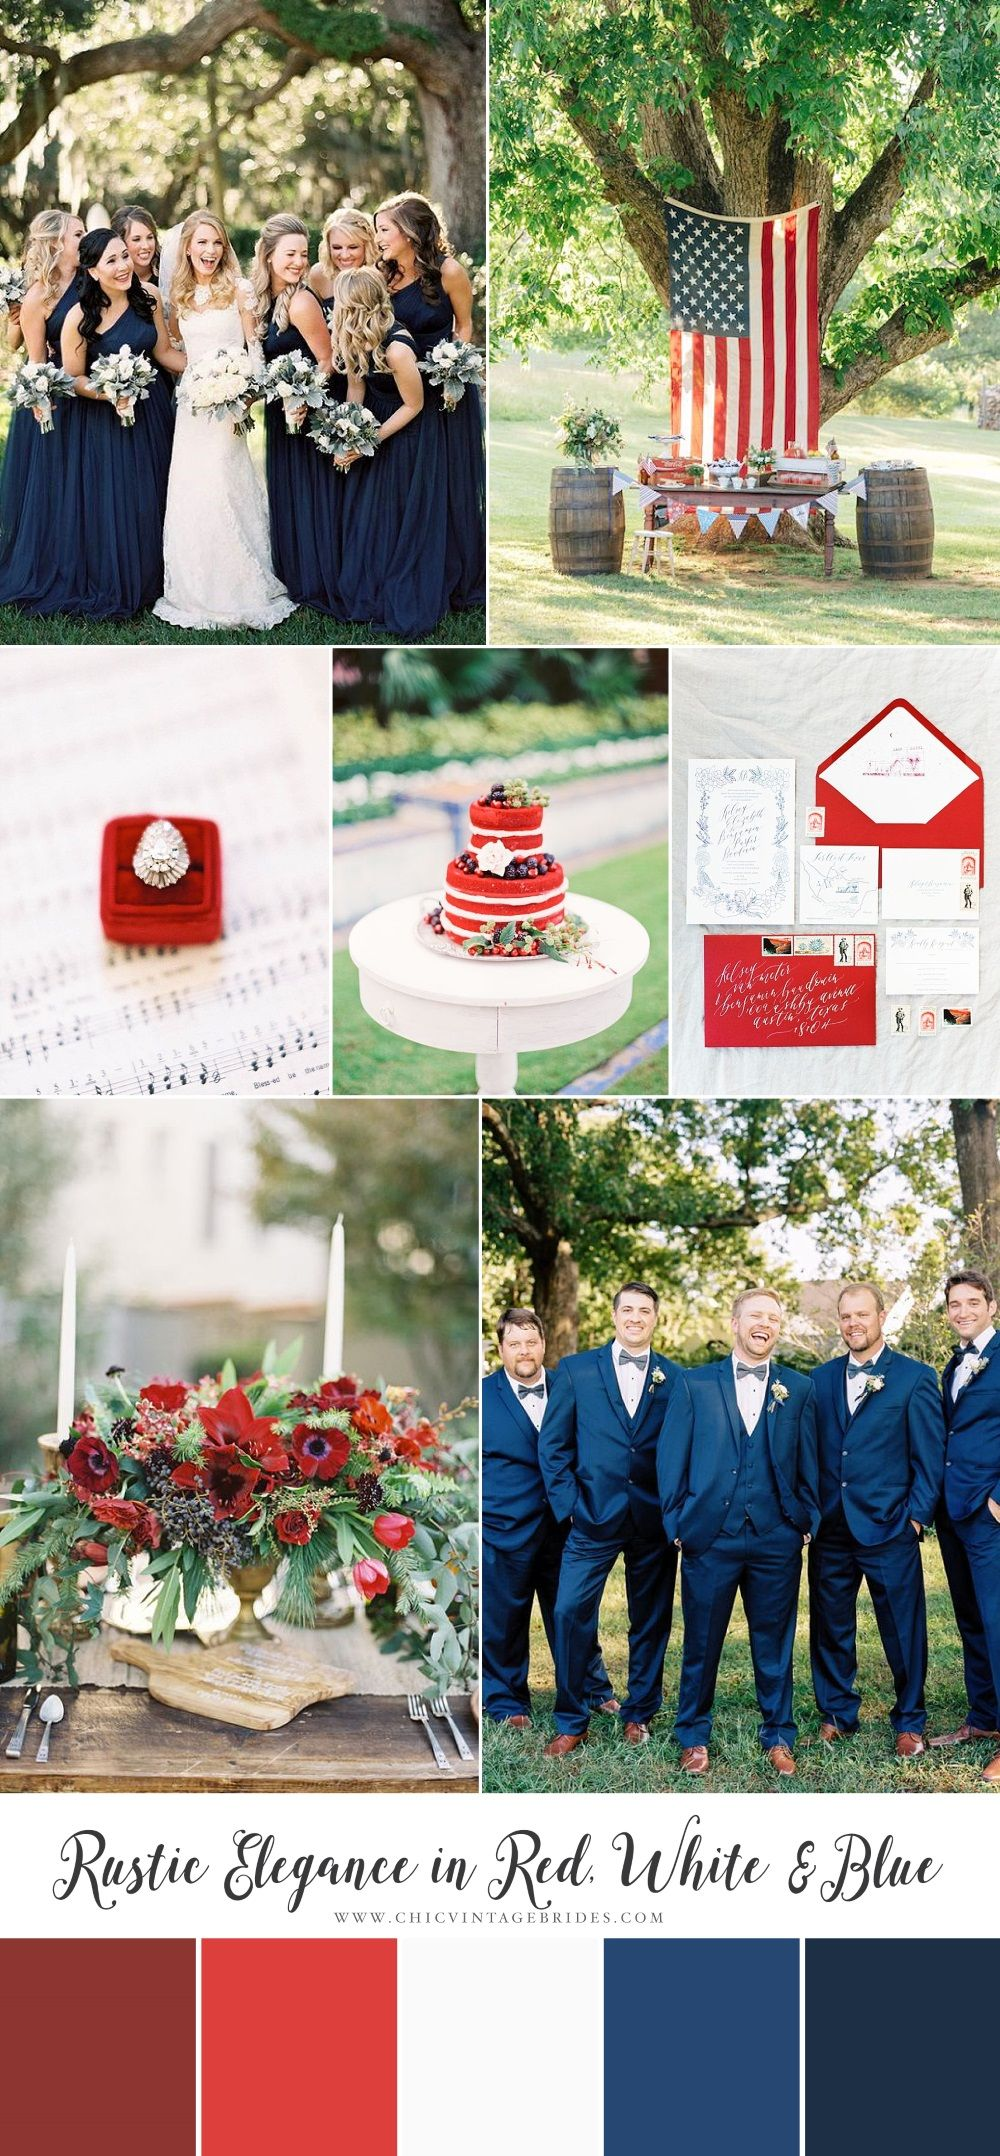 Rustic Elegance in Red, White & Blue 4th of July Wedding